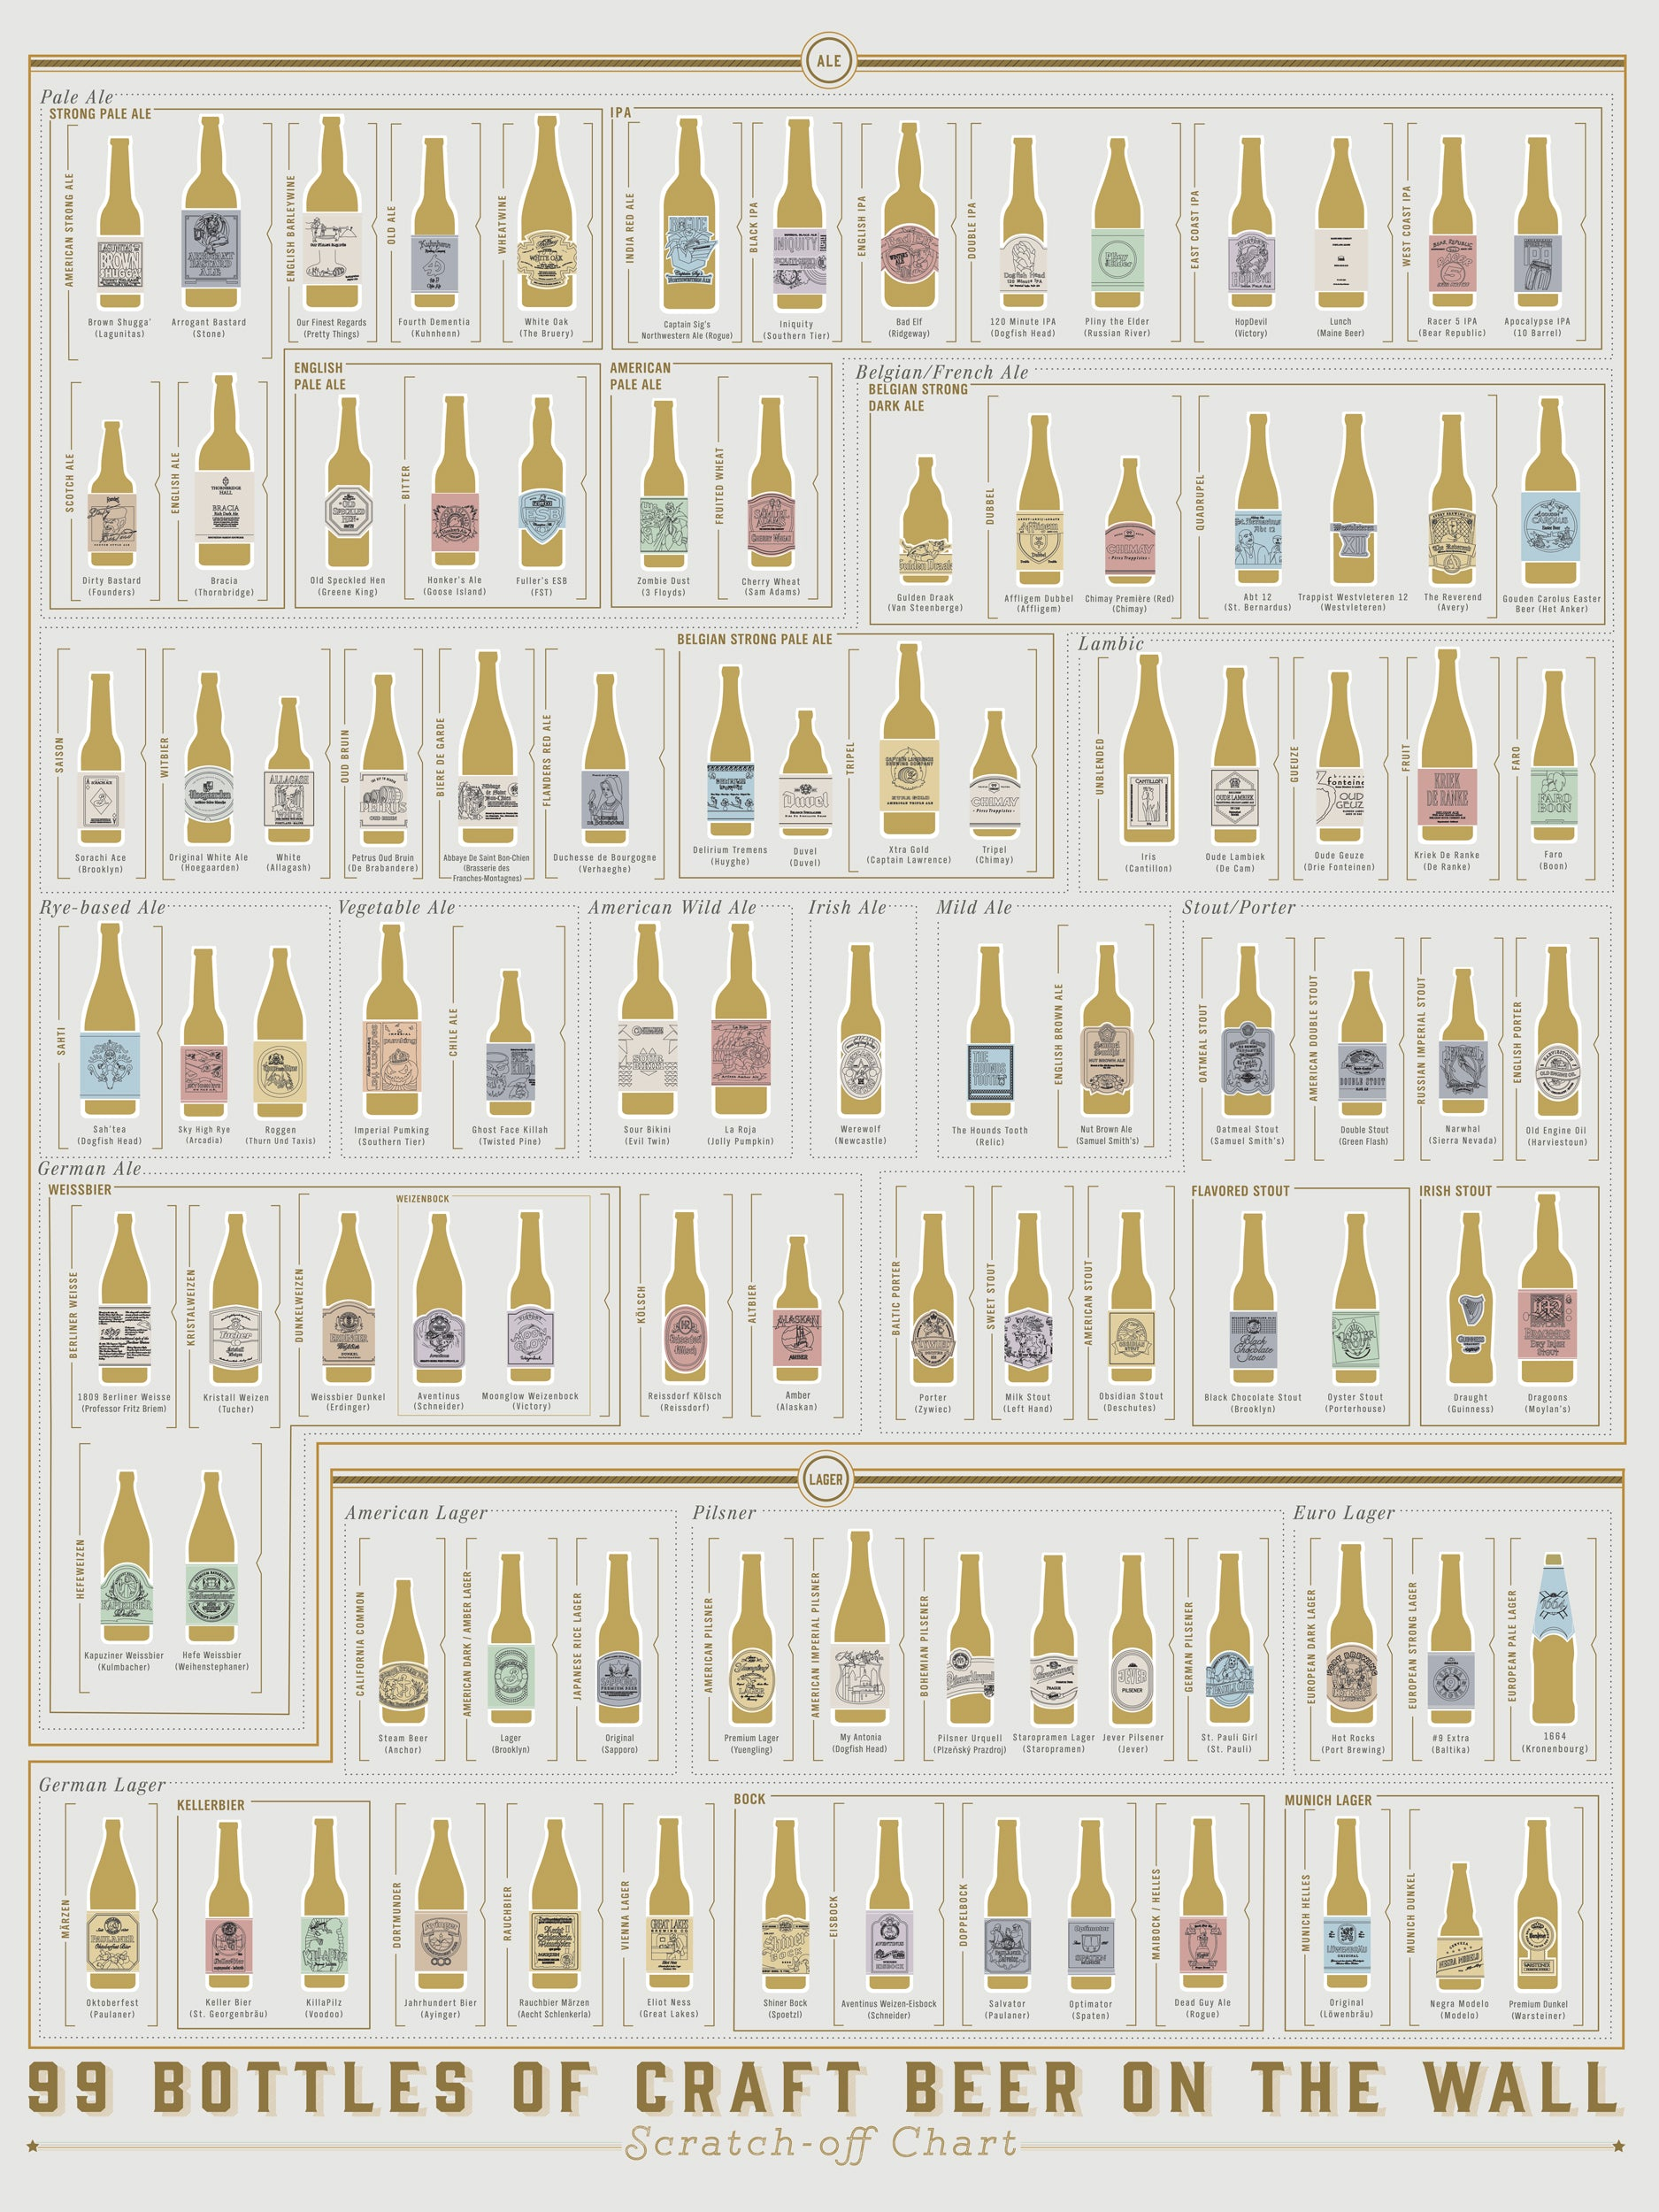 Pop chart lab design data delight 99 bottles of craft beer 99 bottles of craft beer on the wall scratch off chart gumiabroncs Gallery